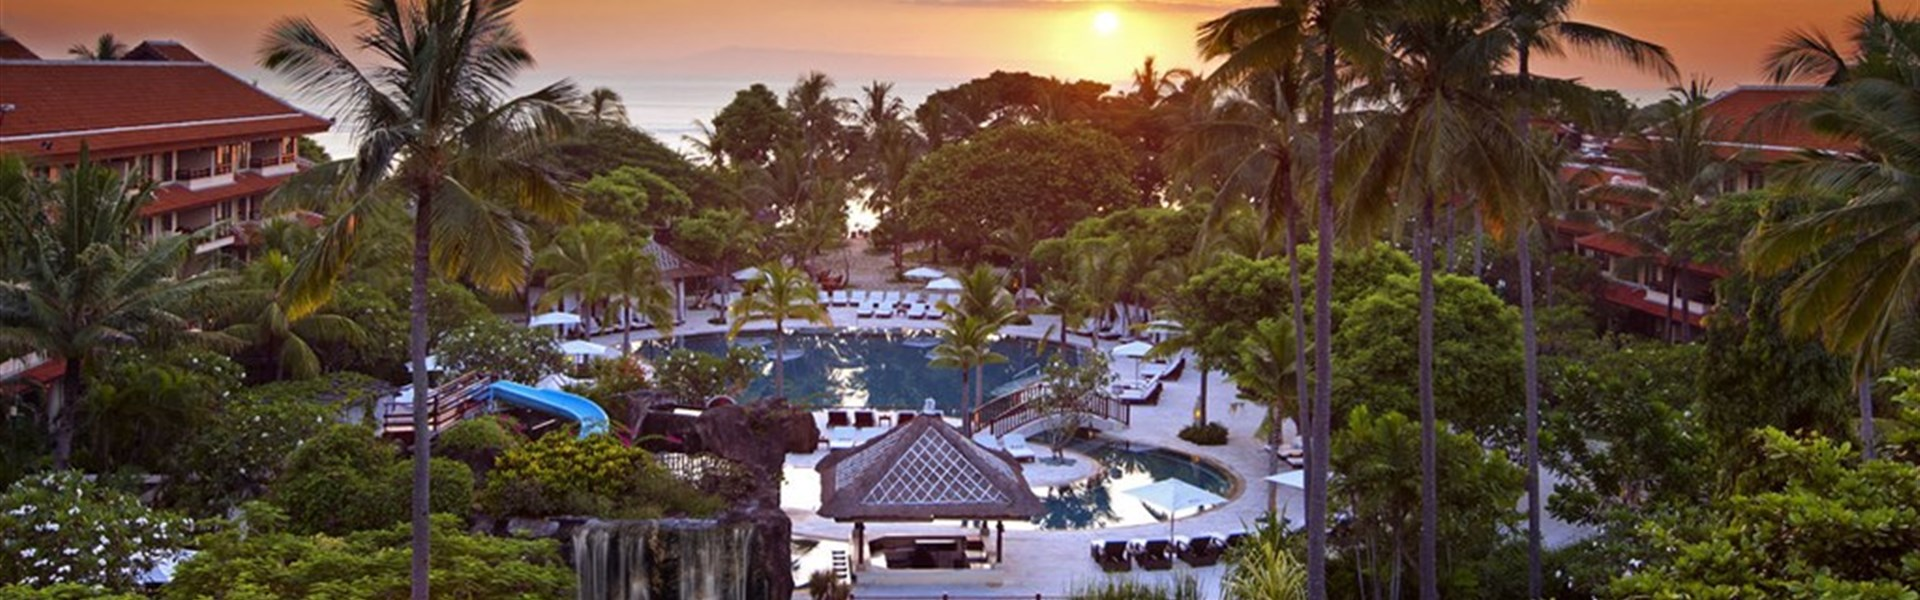 Marco Polo - Westin Resort Nusa Dua -